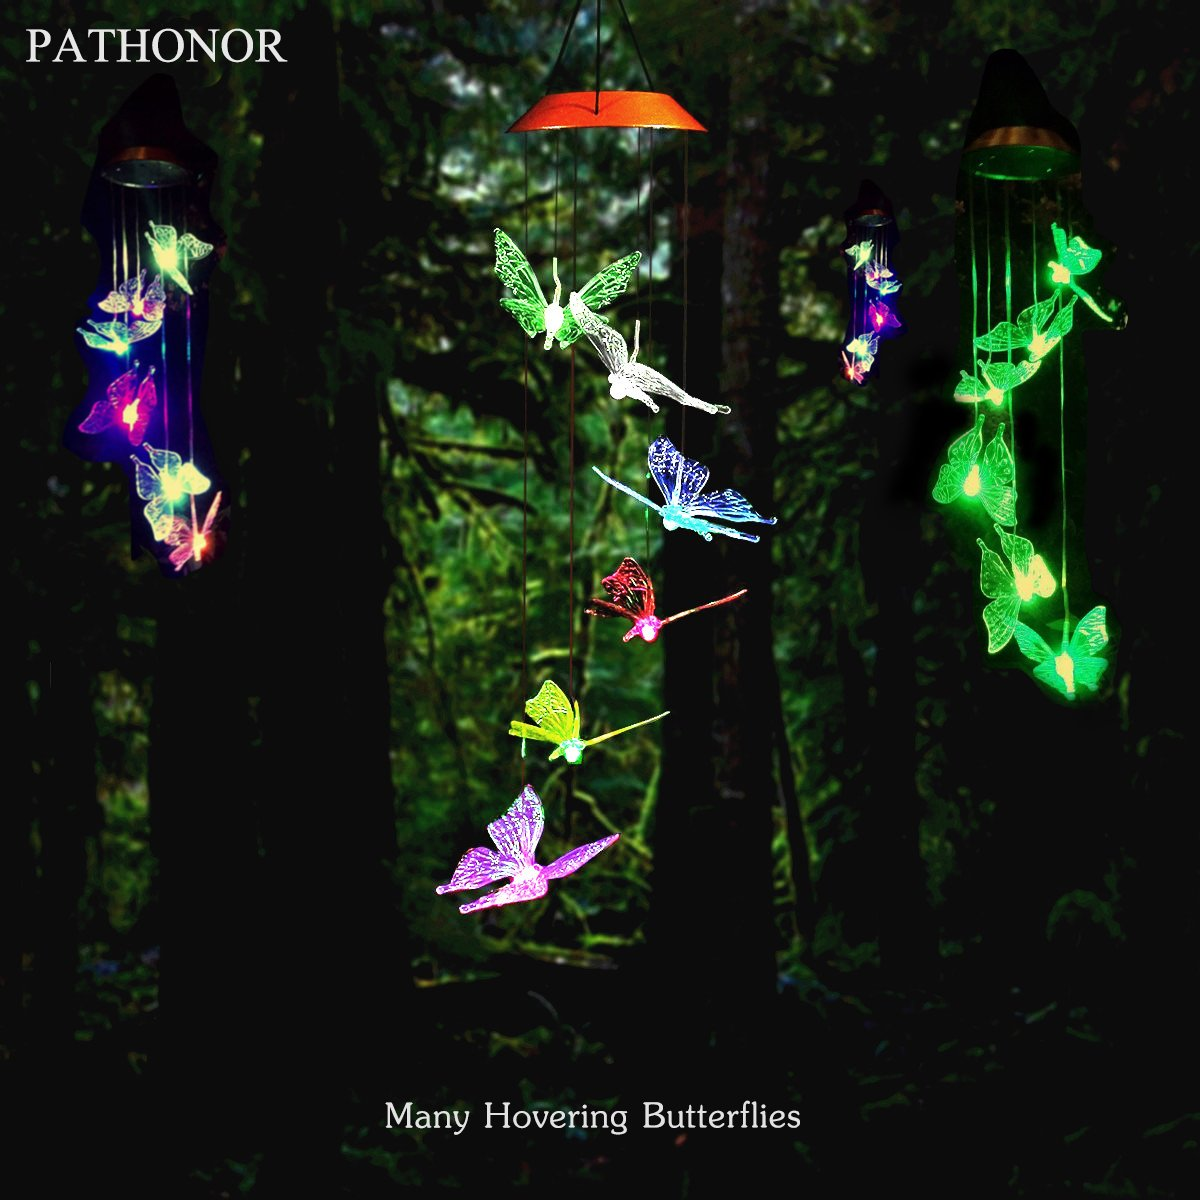 Solar Led Butterfly Wind Chimes, PATHONOR Color-changing Wind Chime Waterproof Automatic Light Sensor Outdoor Decor for Home Party Balcony Porch Patio Garden, Upgraded Version